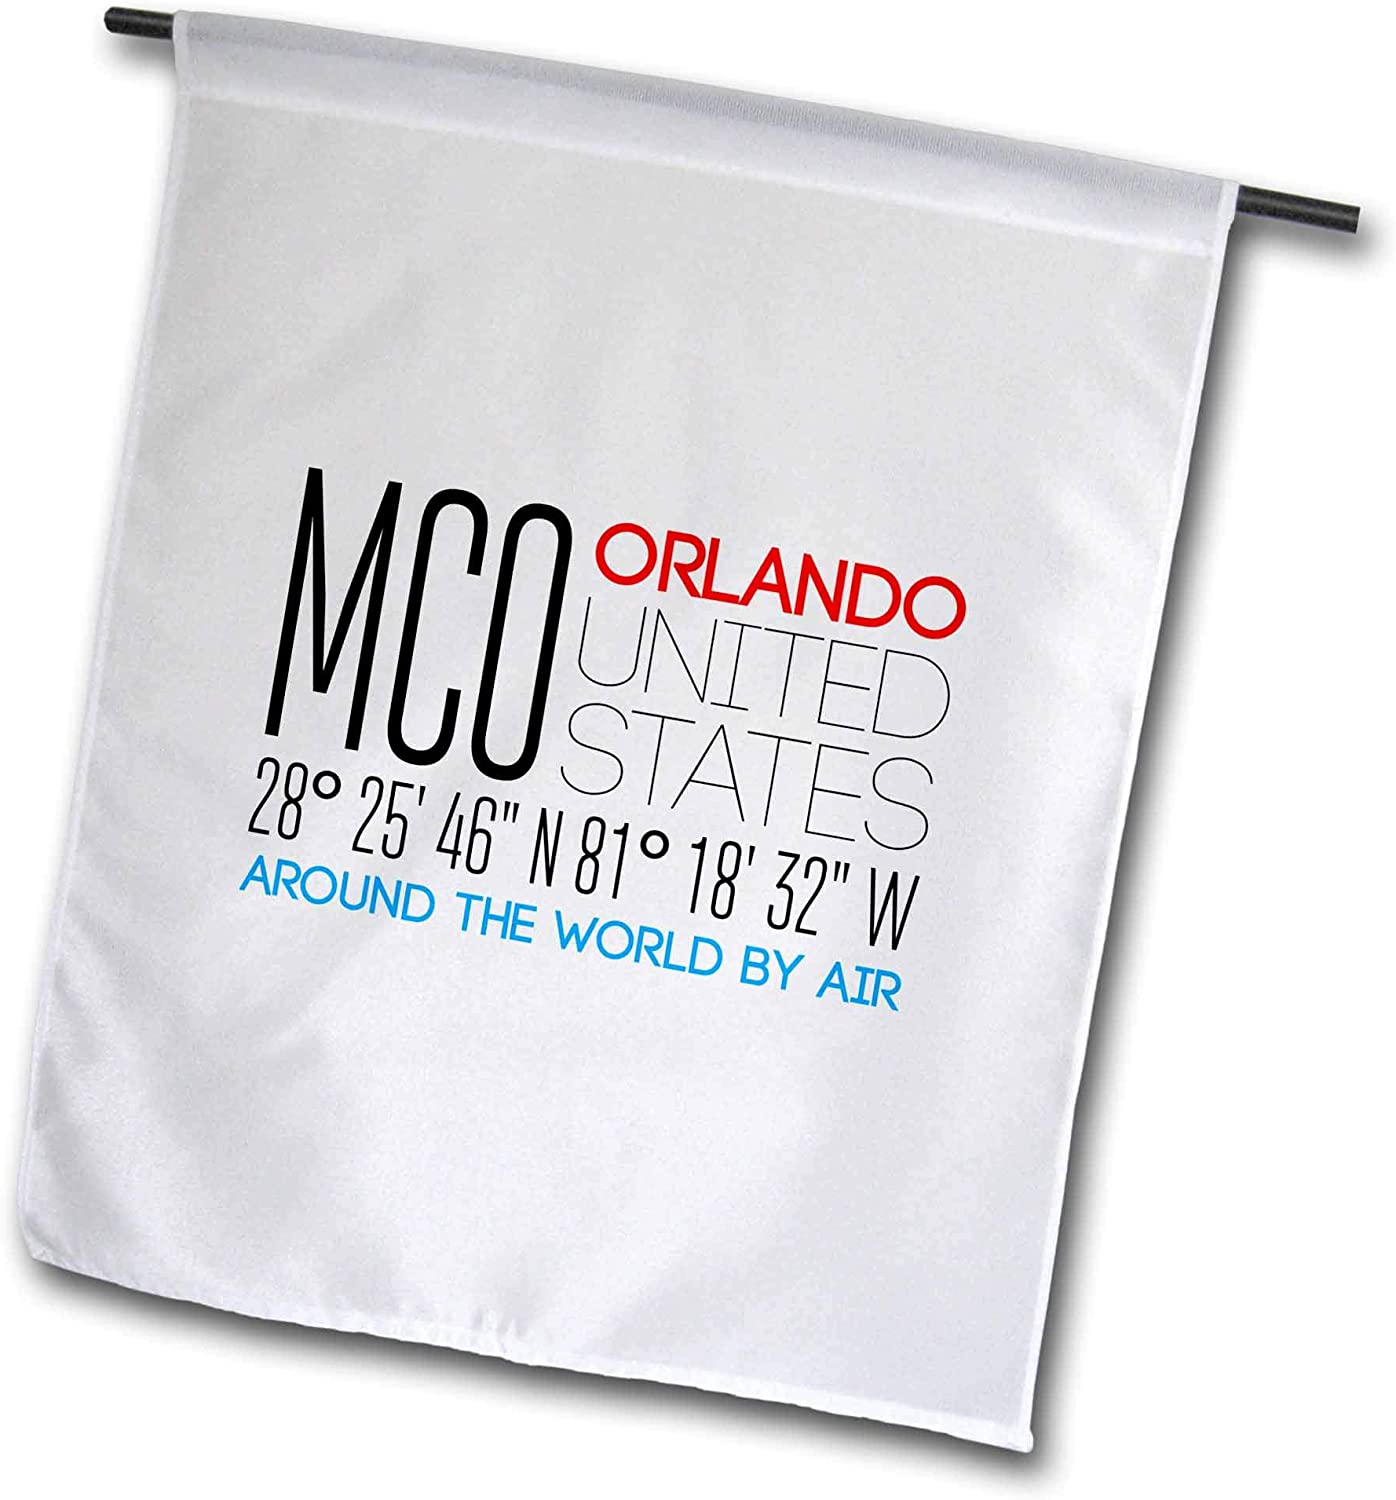 3dRose Alexis Design - Around The World by Air - Beautiful Text MCO, Orlando, United States, Location Coordinates - 12 x 18 inch Garden Flag (fl_311093_1)